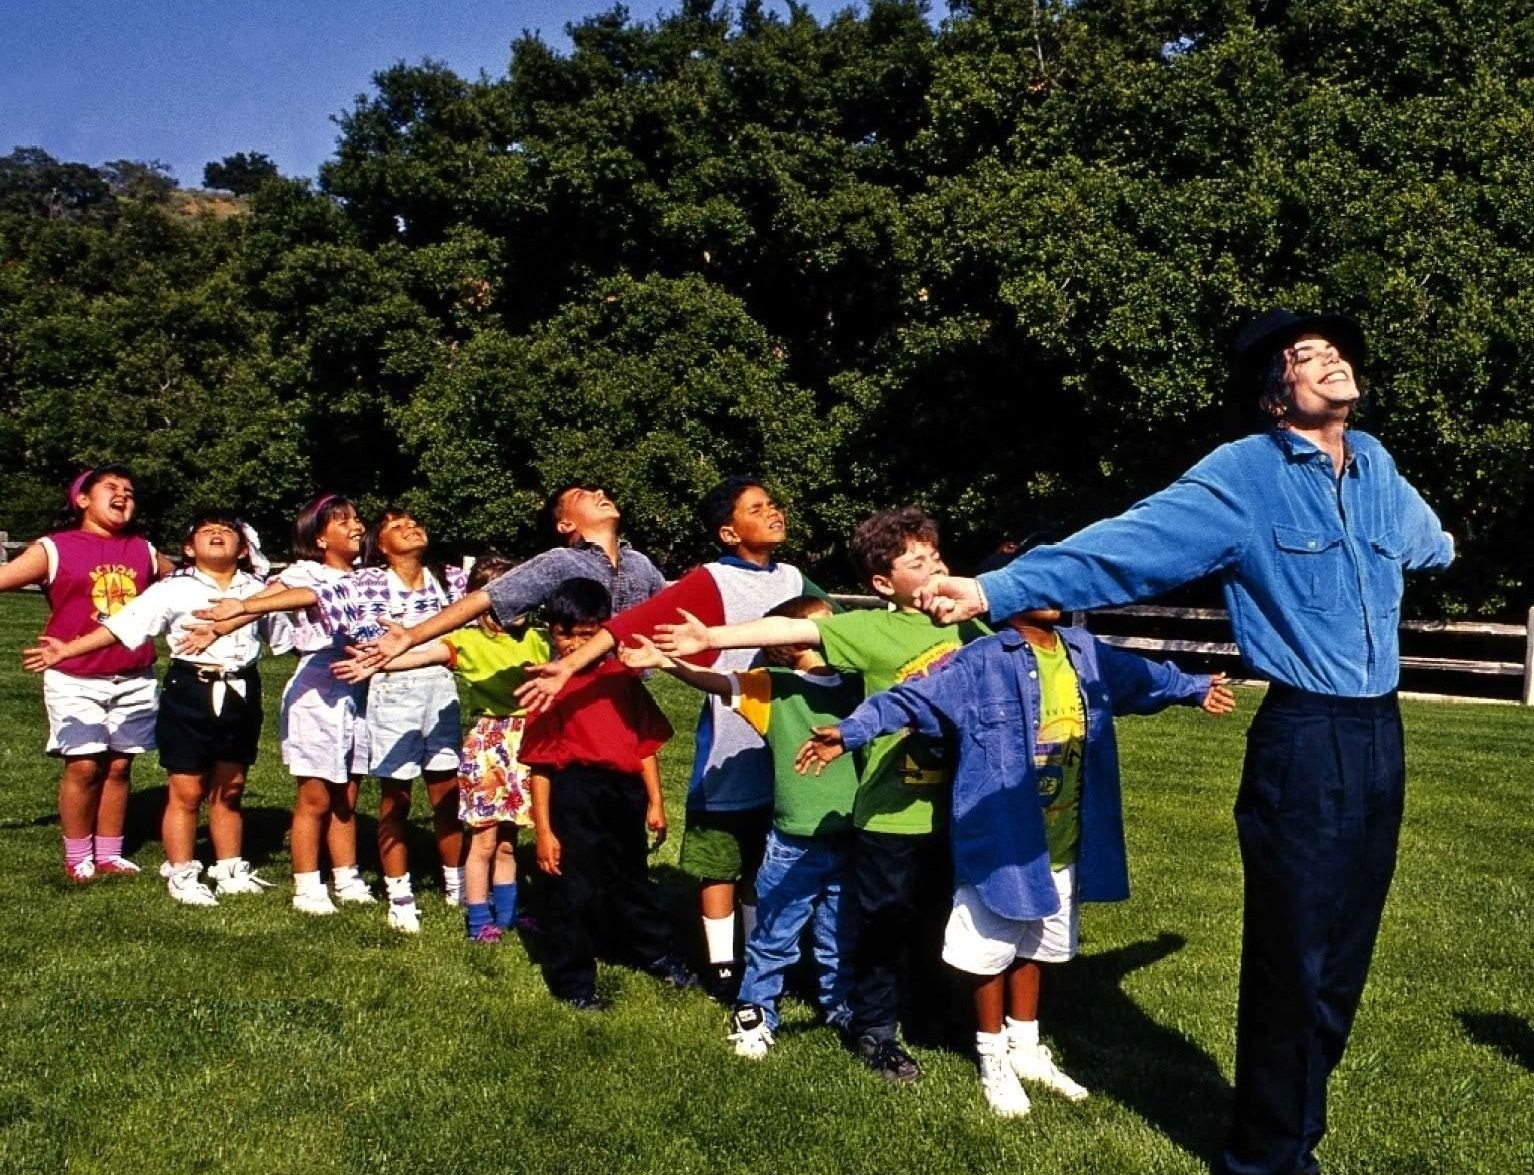 Michael-neverland-children